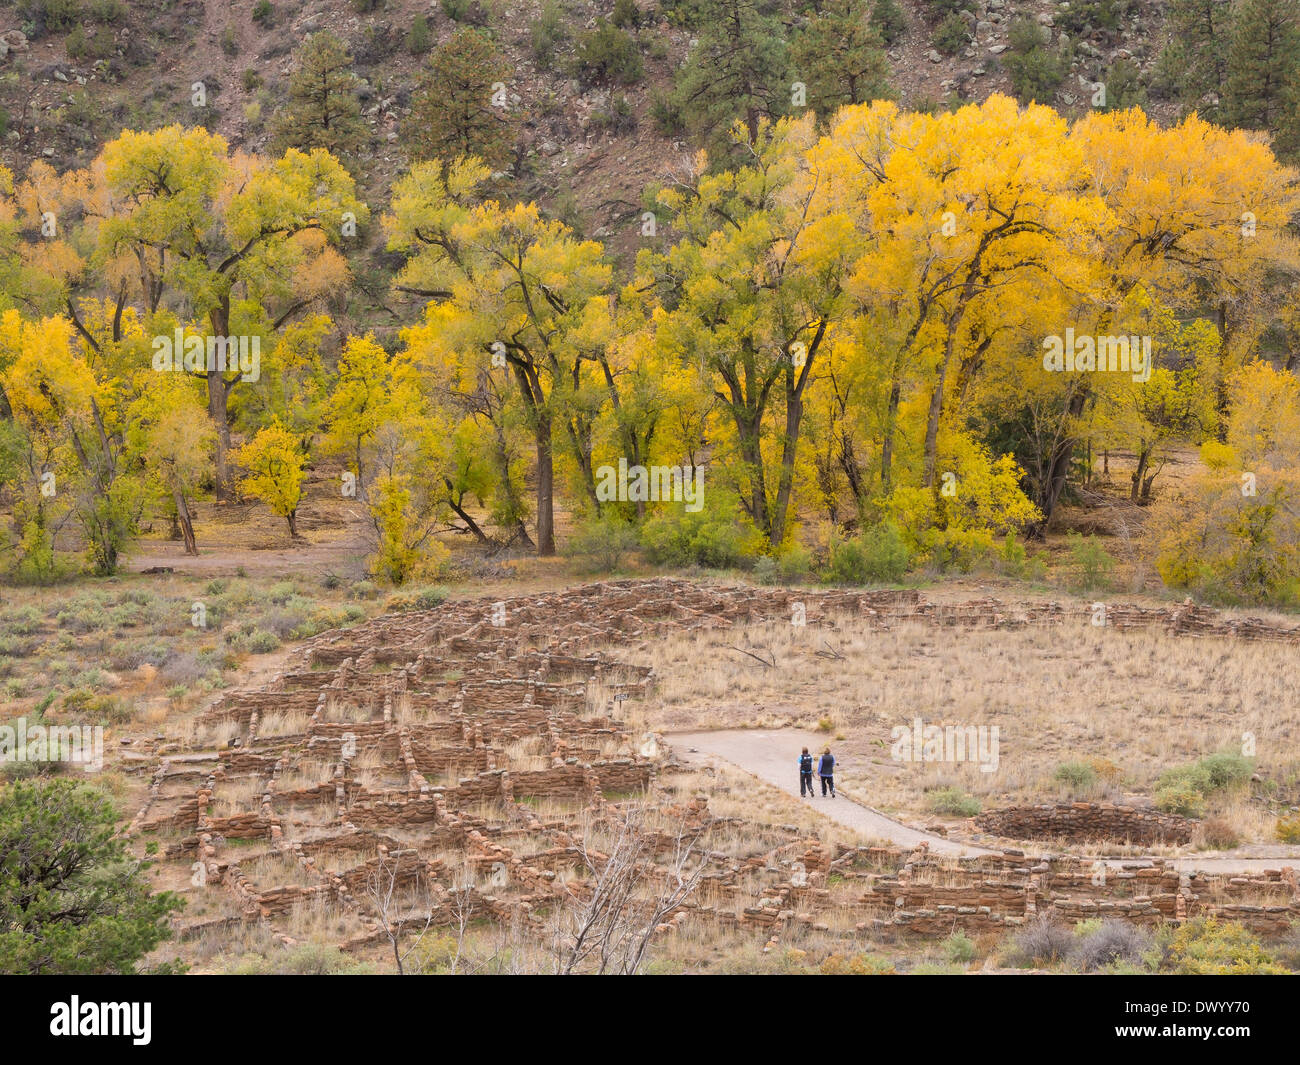 Cottonwood trees in the canyon at the Bandelier National Monument Park, New Mexico, USA. - Stock Image